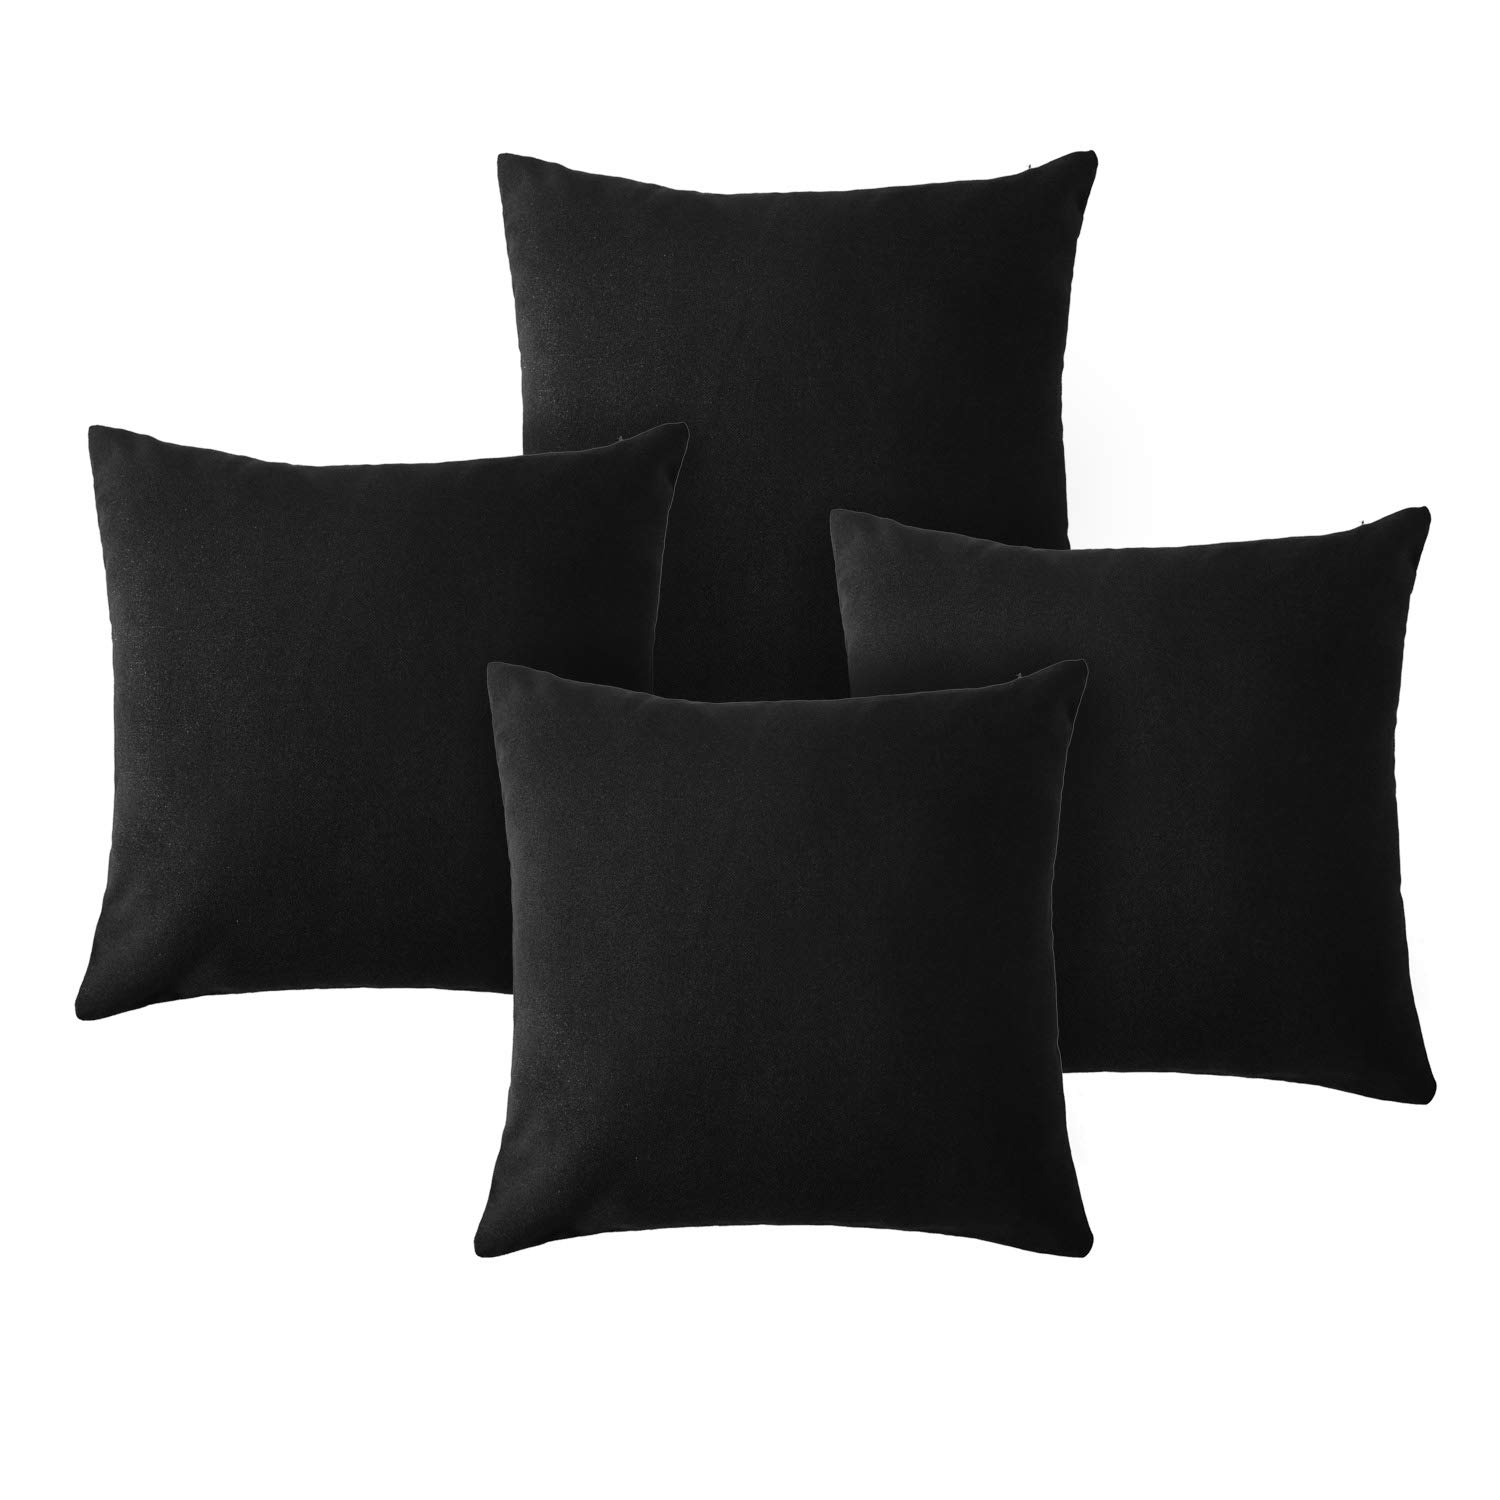 Deconovo Faux Linen Cushion Covers Hand Made Pillow Case Square Cushion Covers for Dining Chairs with Invisible Zip Set of 4 Black